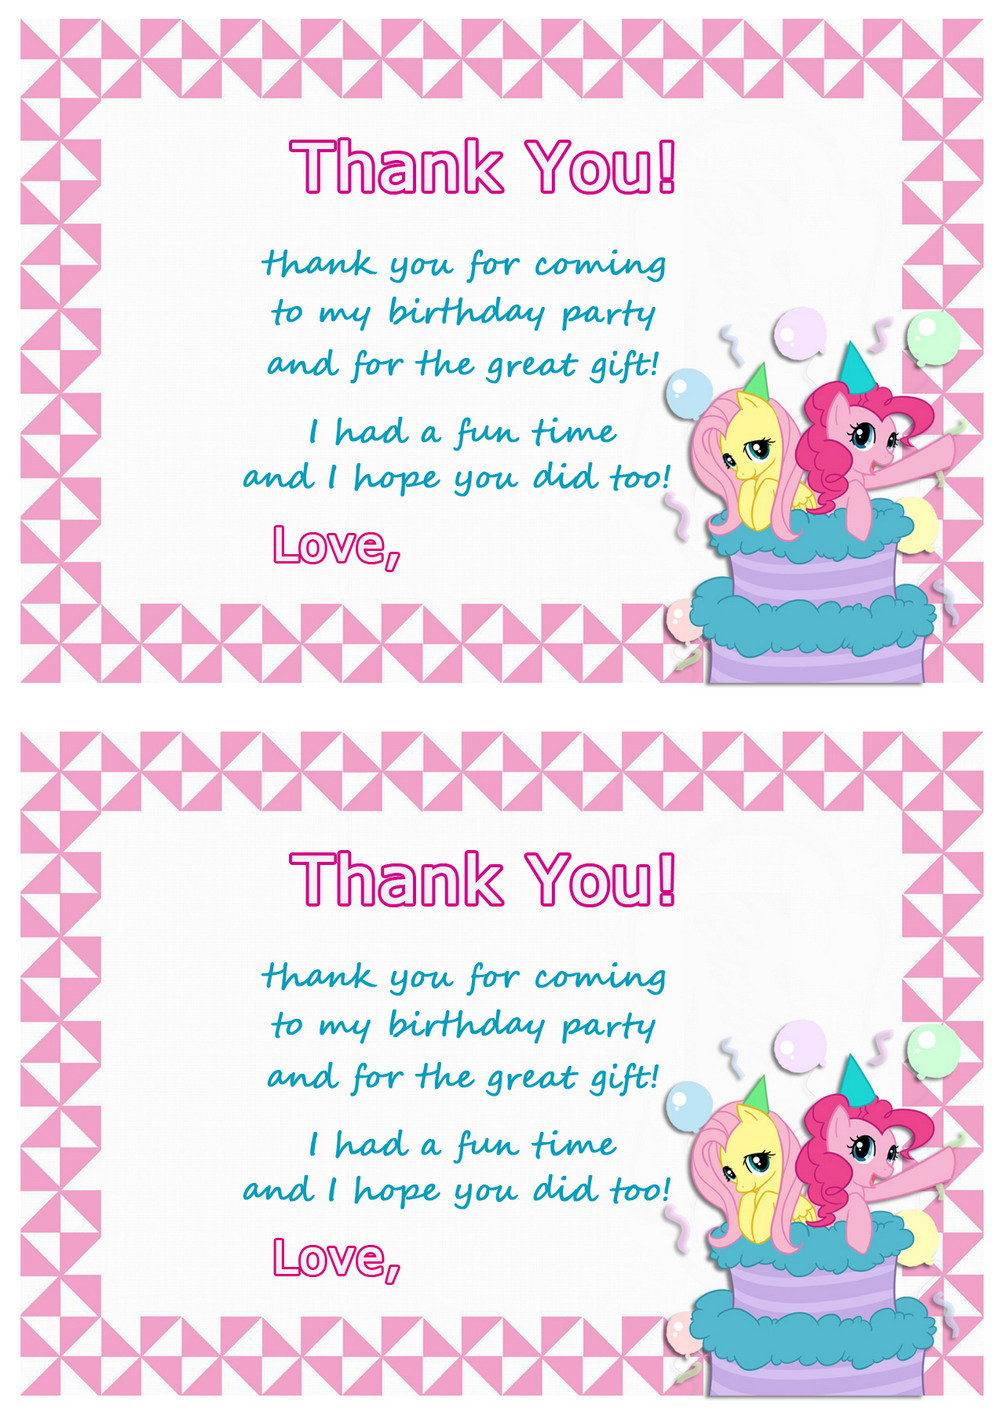 Fullsize Of Birthday Thank You Cards